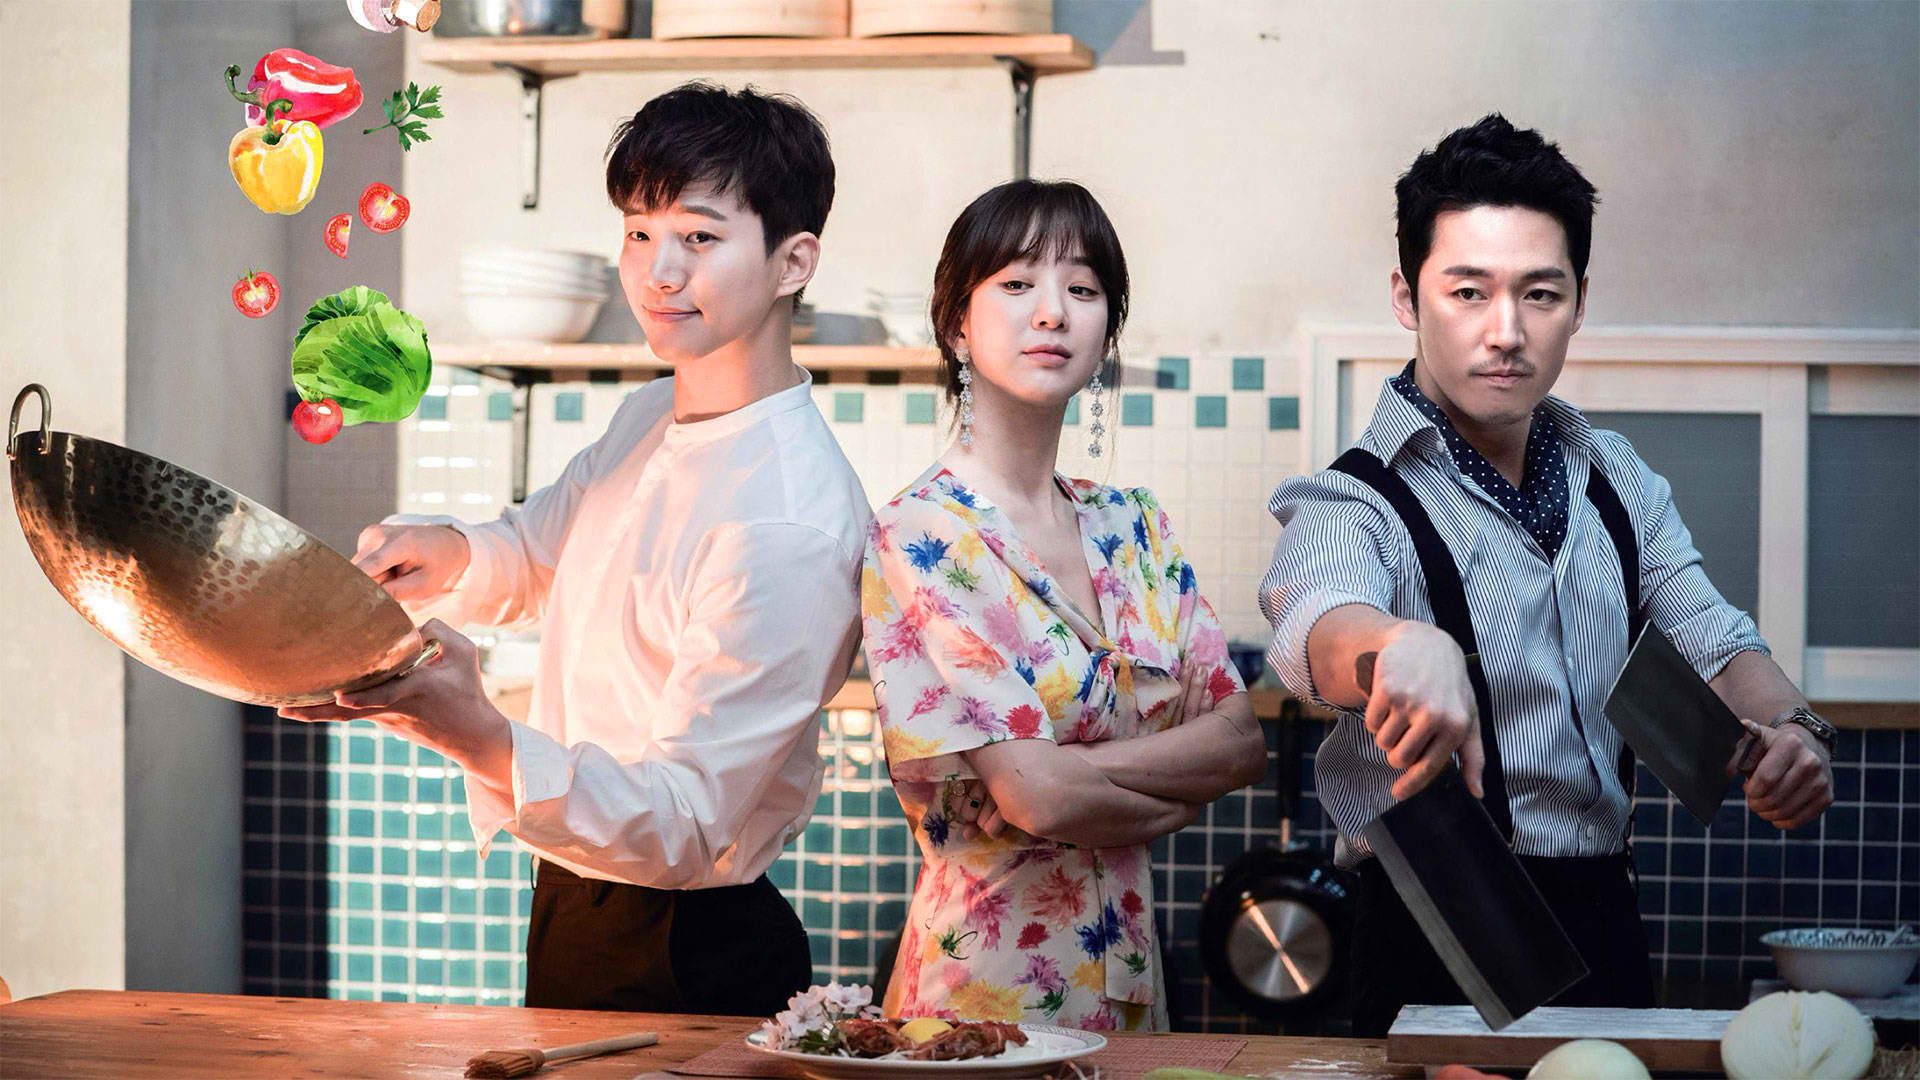 In this Korean Netflix series, we witness a Chinese restaurant makeover driven by heartbreak, neglect, and determination